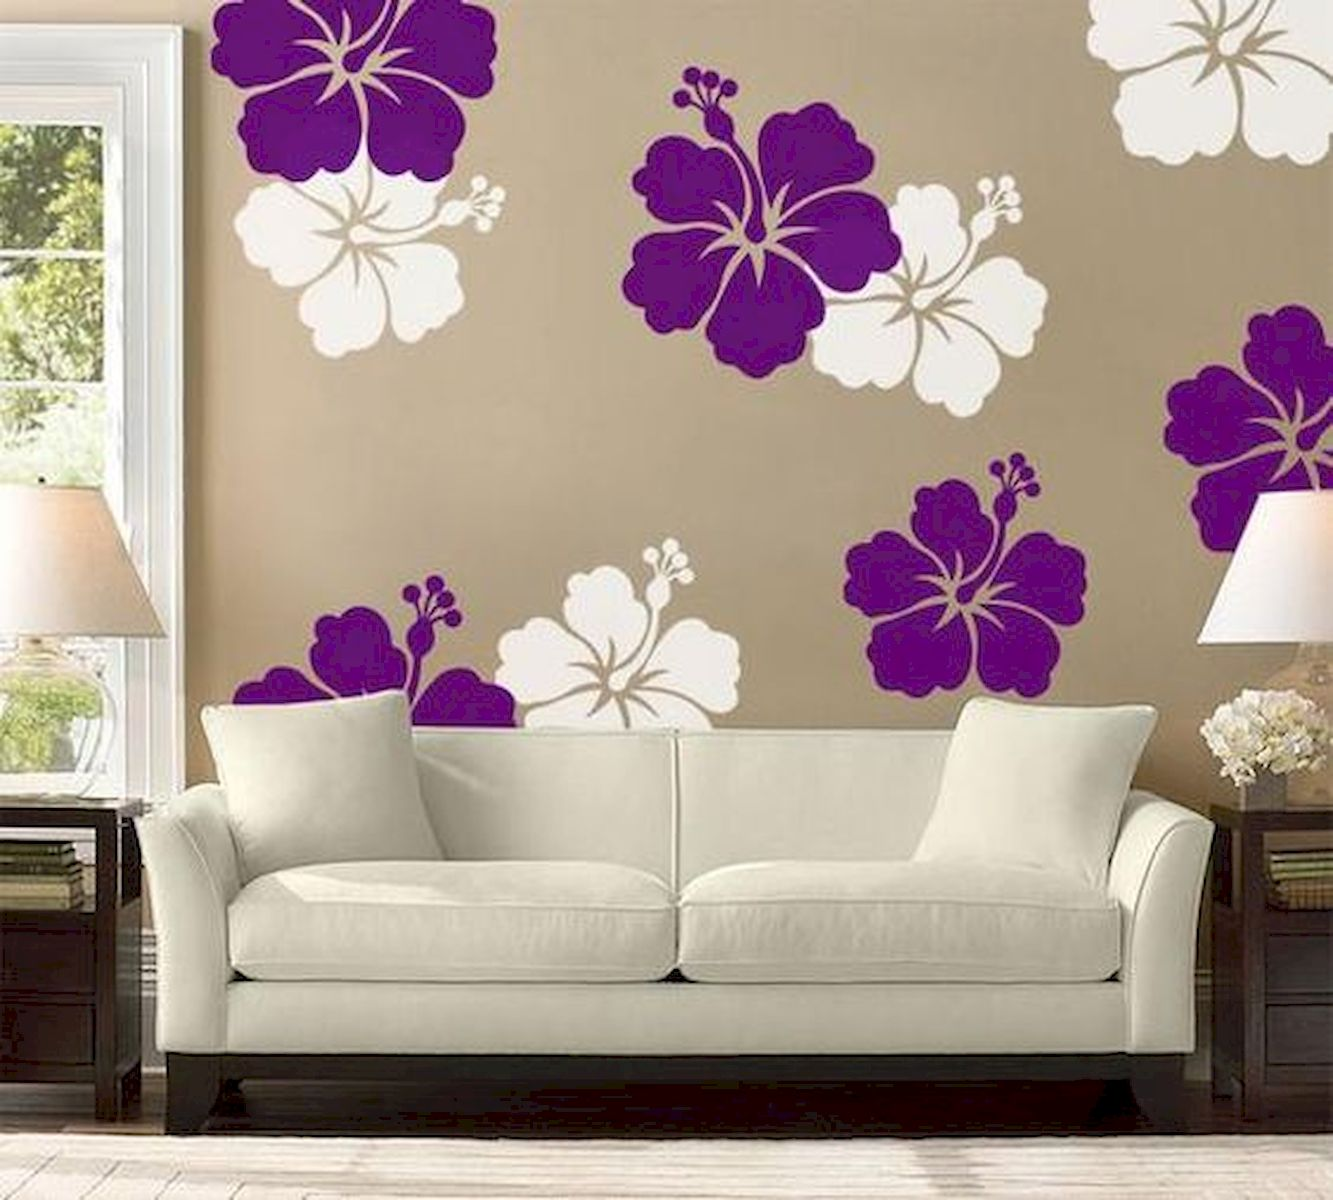 44 Easy But Awesome DIY Wall Painting Ideas To Decorate Your Home (12)